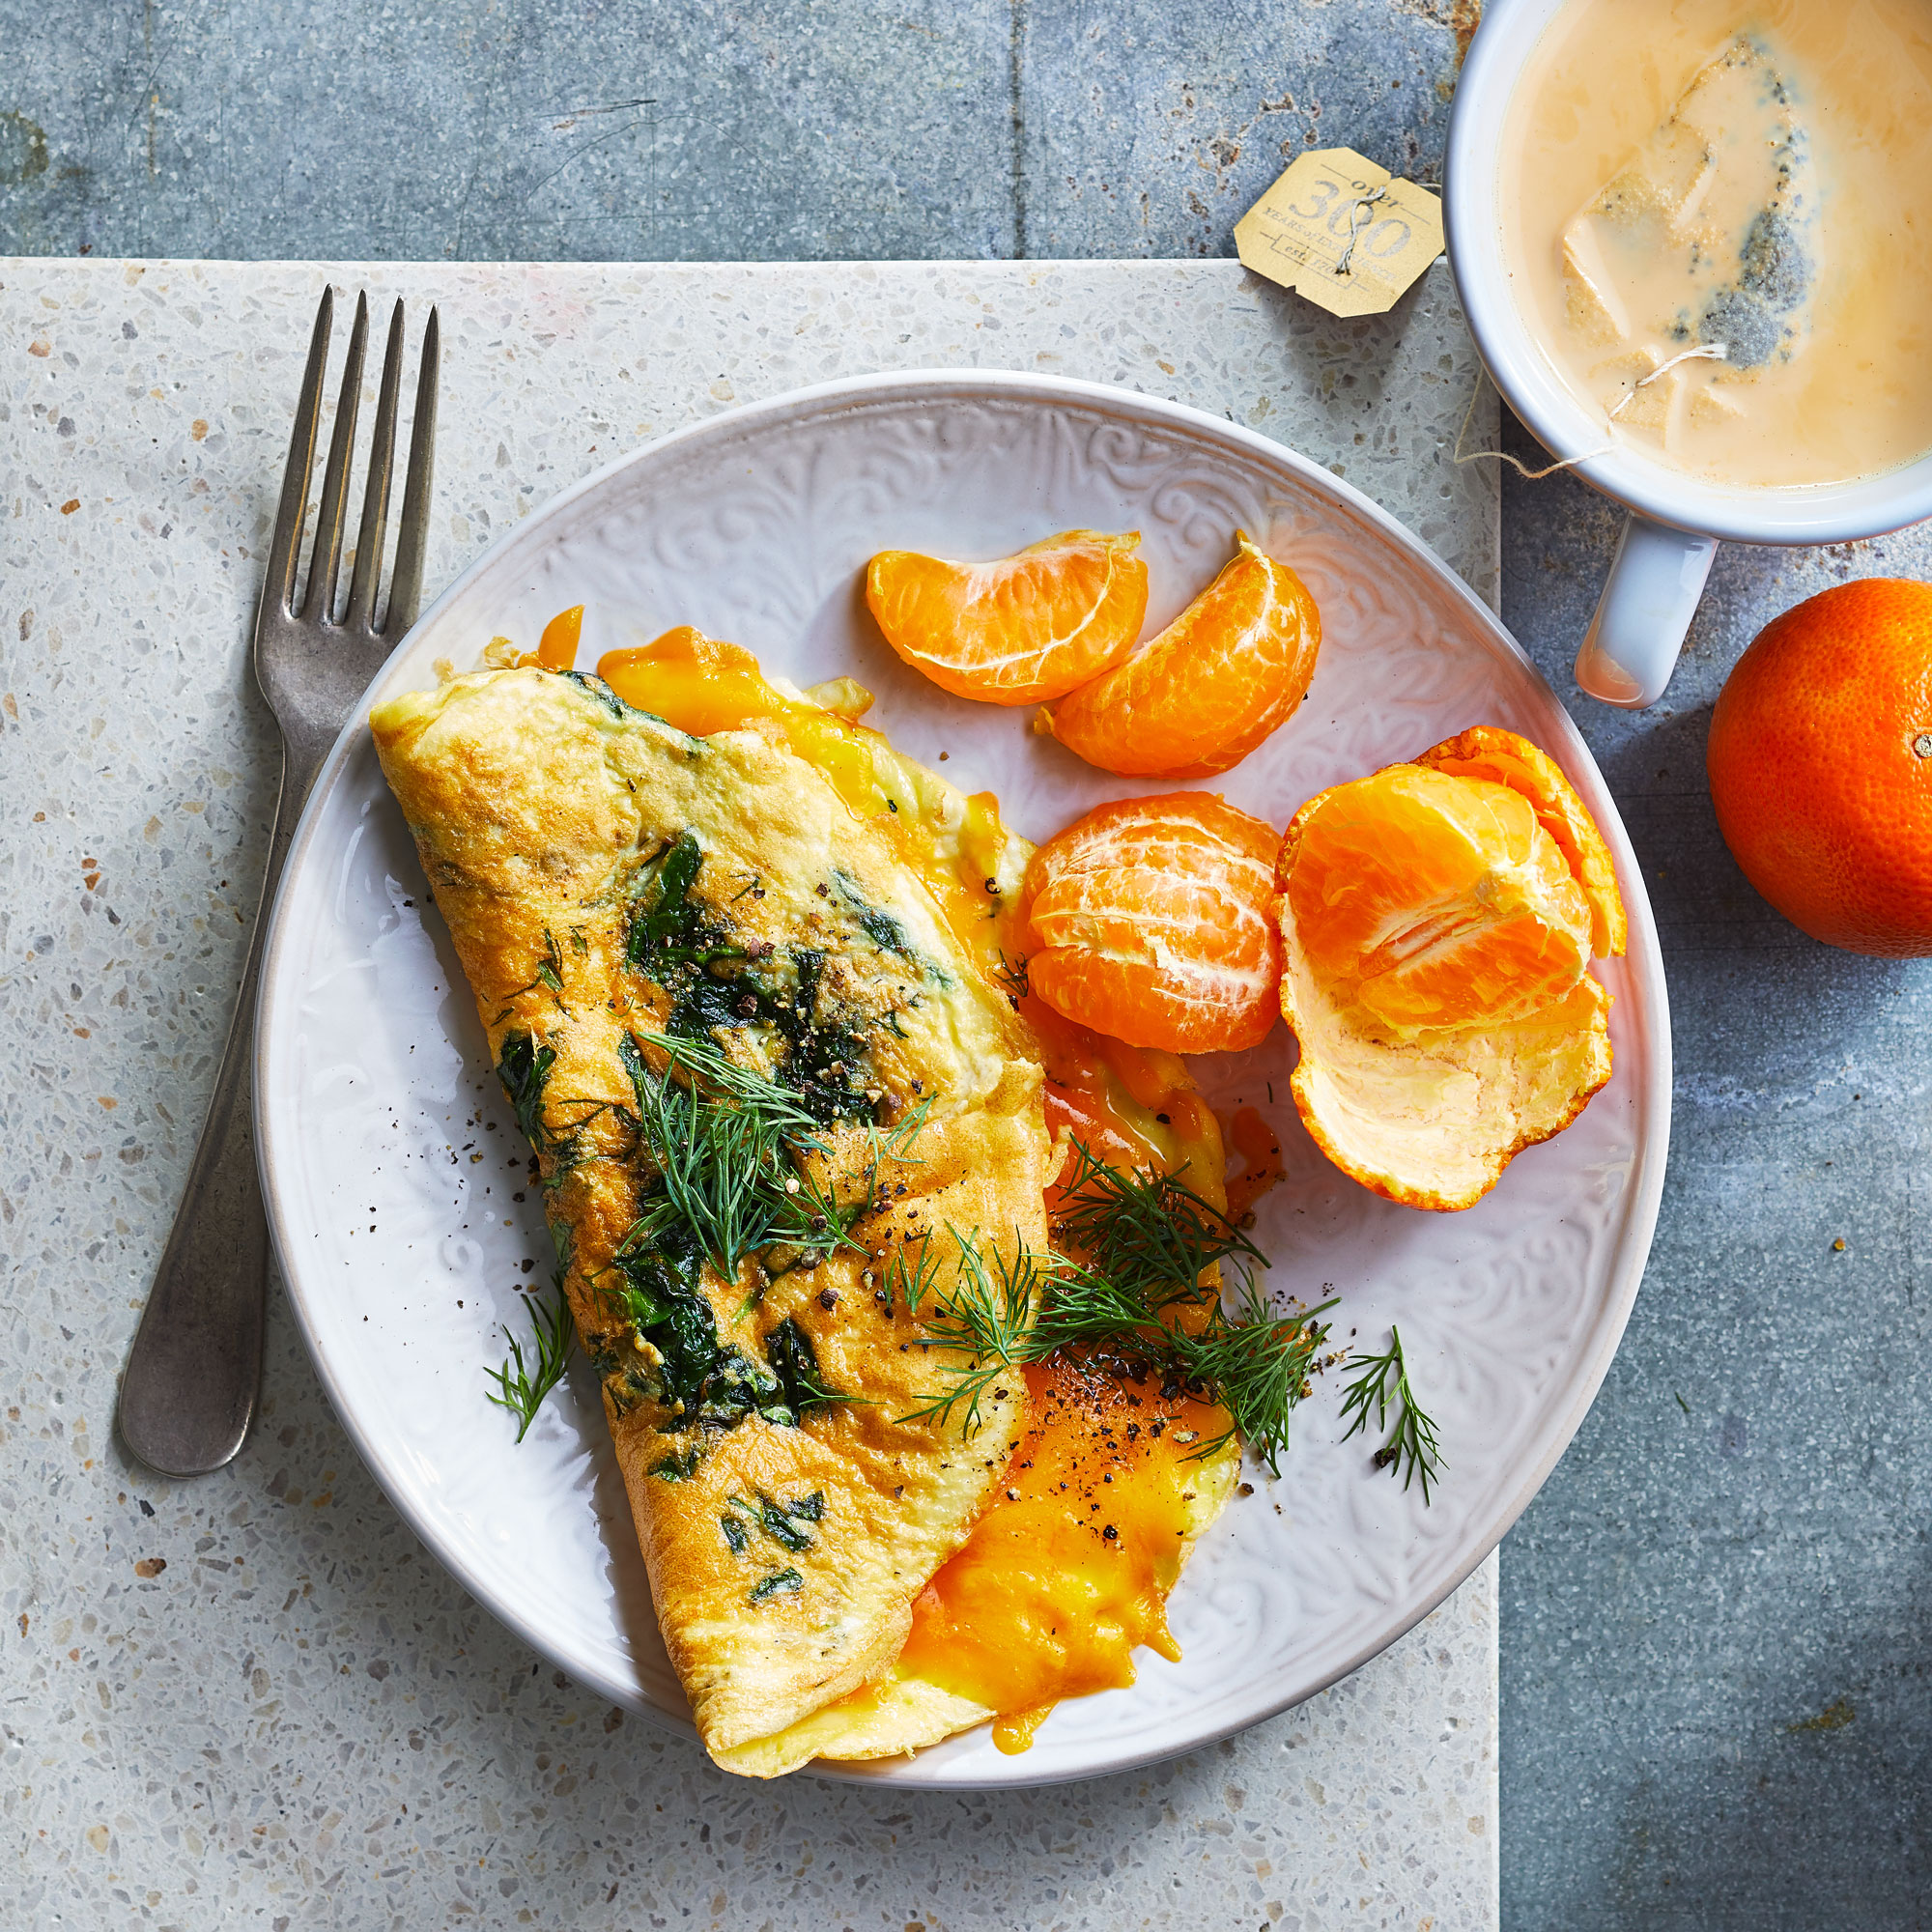 10-Minute Spinach Omelet